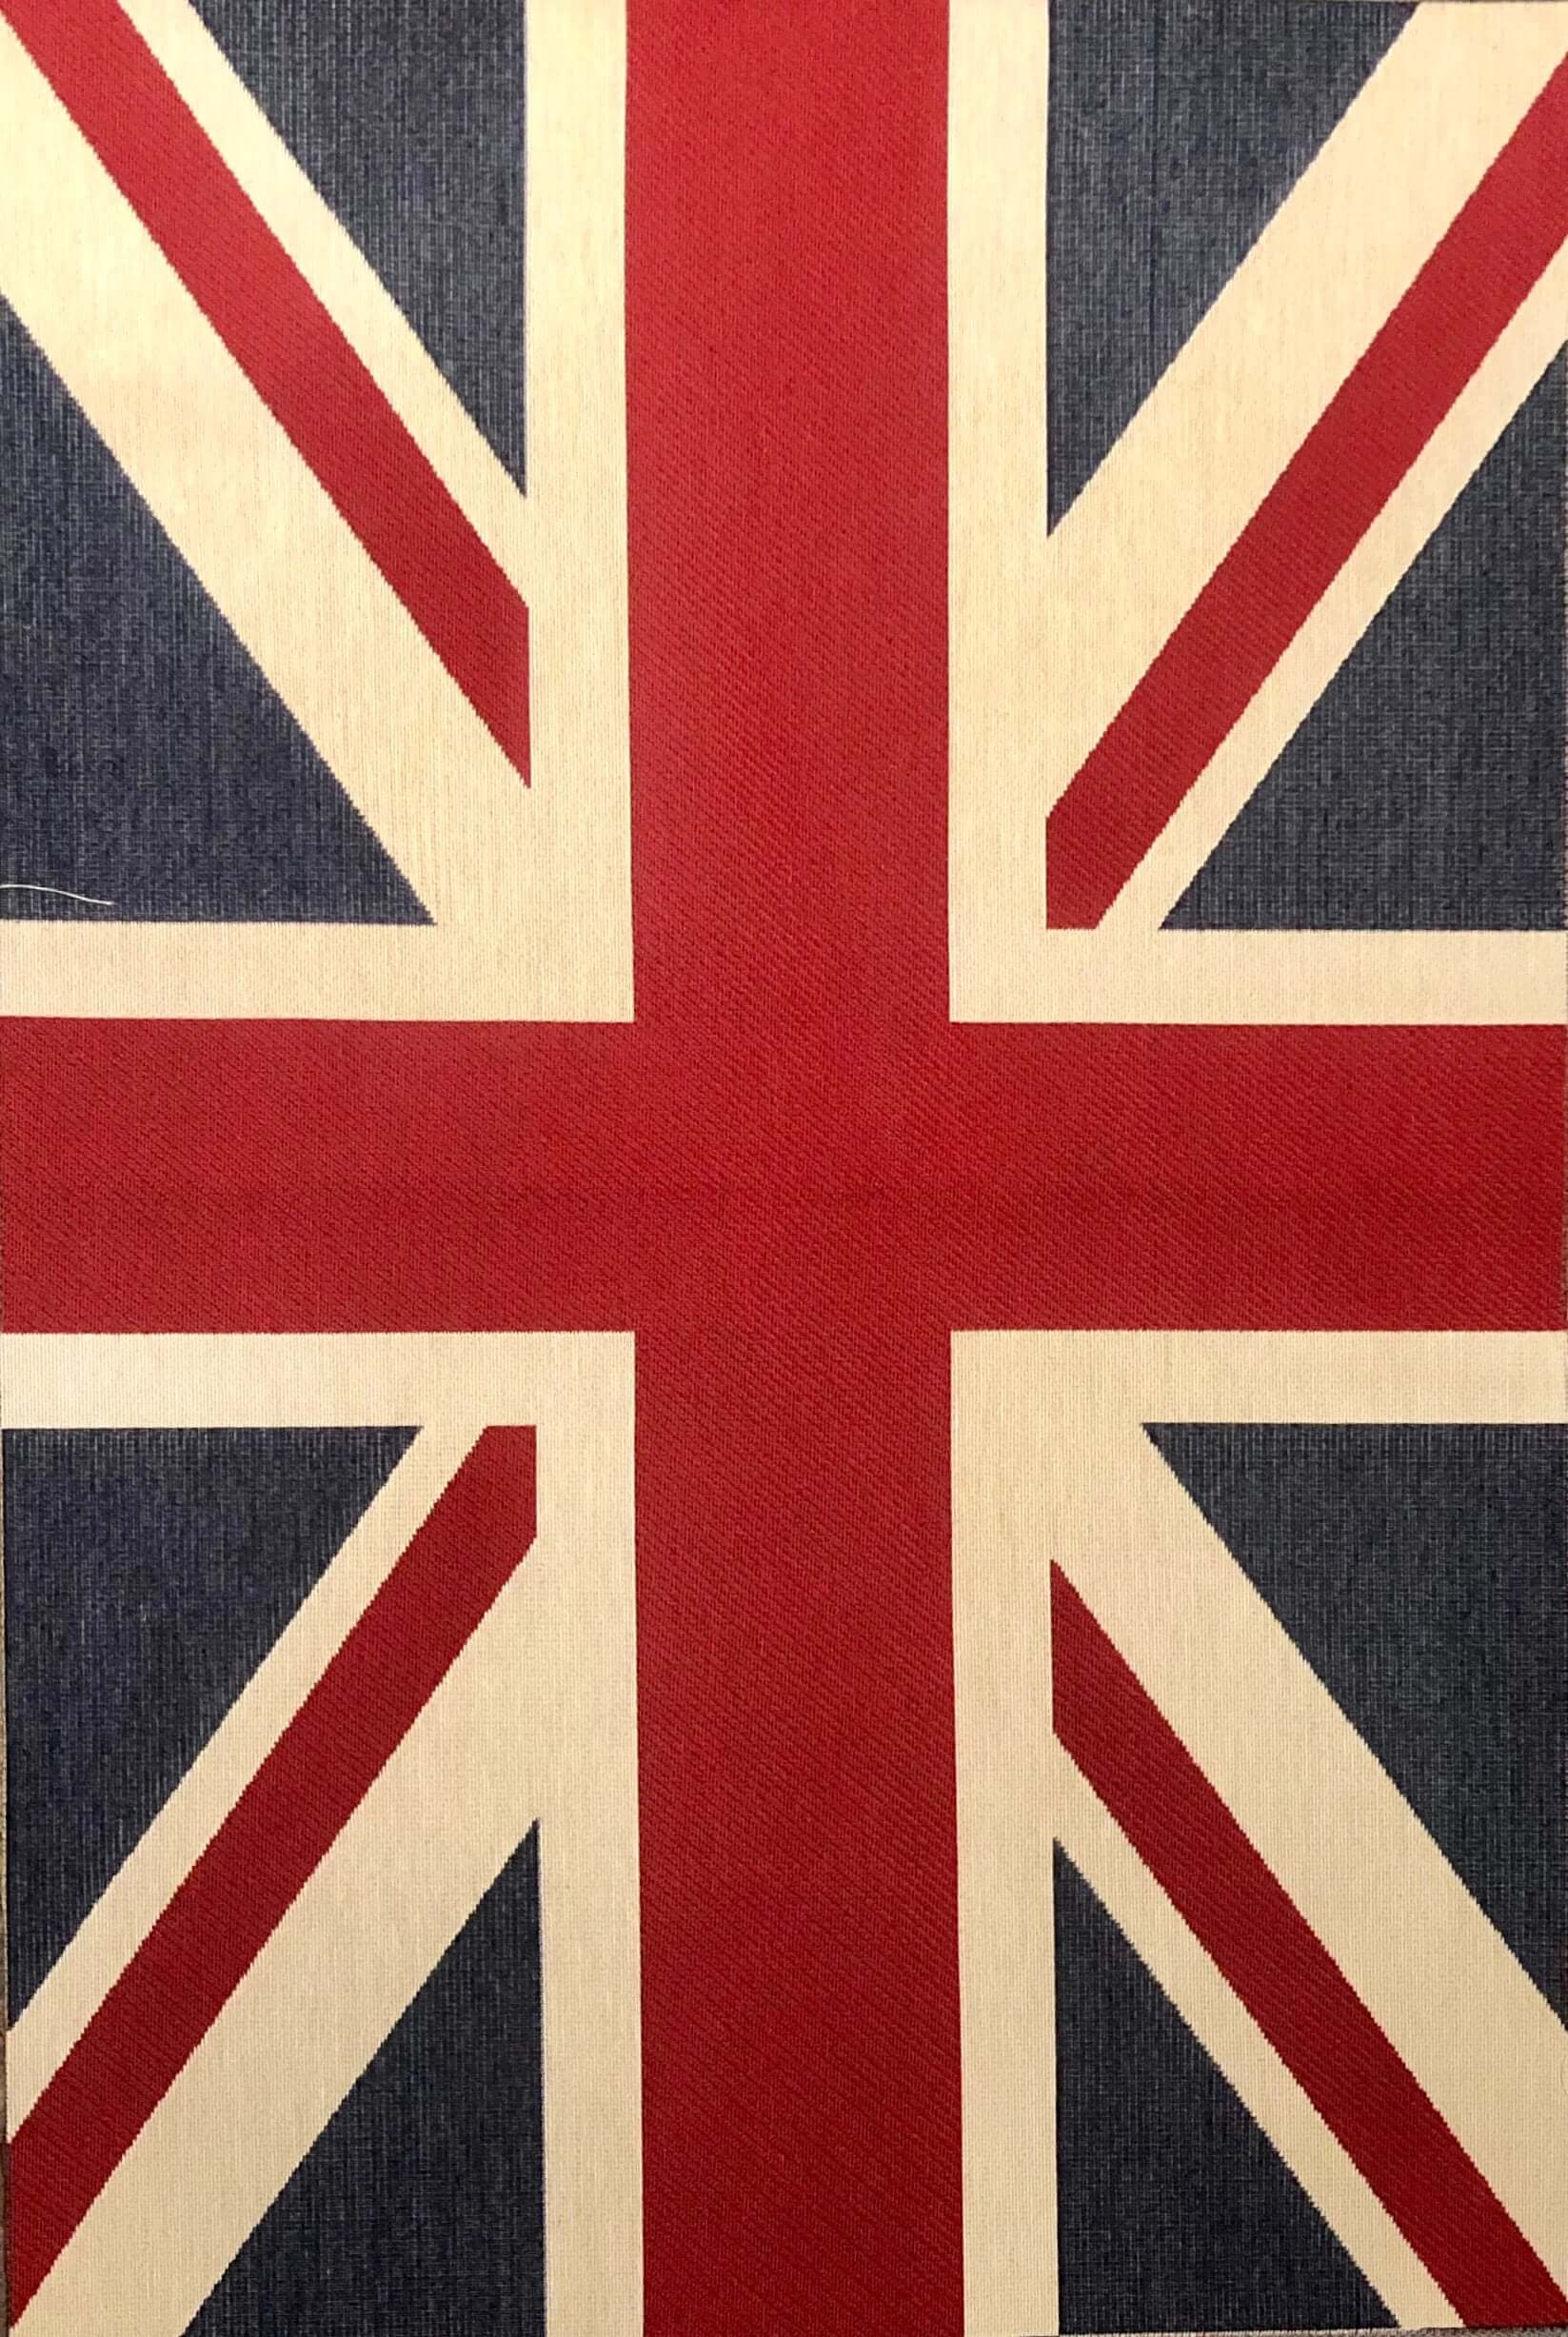 union-jack-flag-retro-linen-look-heavy-jacquard-gobelin-upholstery-cotton-bag-cushion-panel-fabric-uk-banner-70cm-x-48cm-5e10ce1b1.jpg